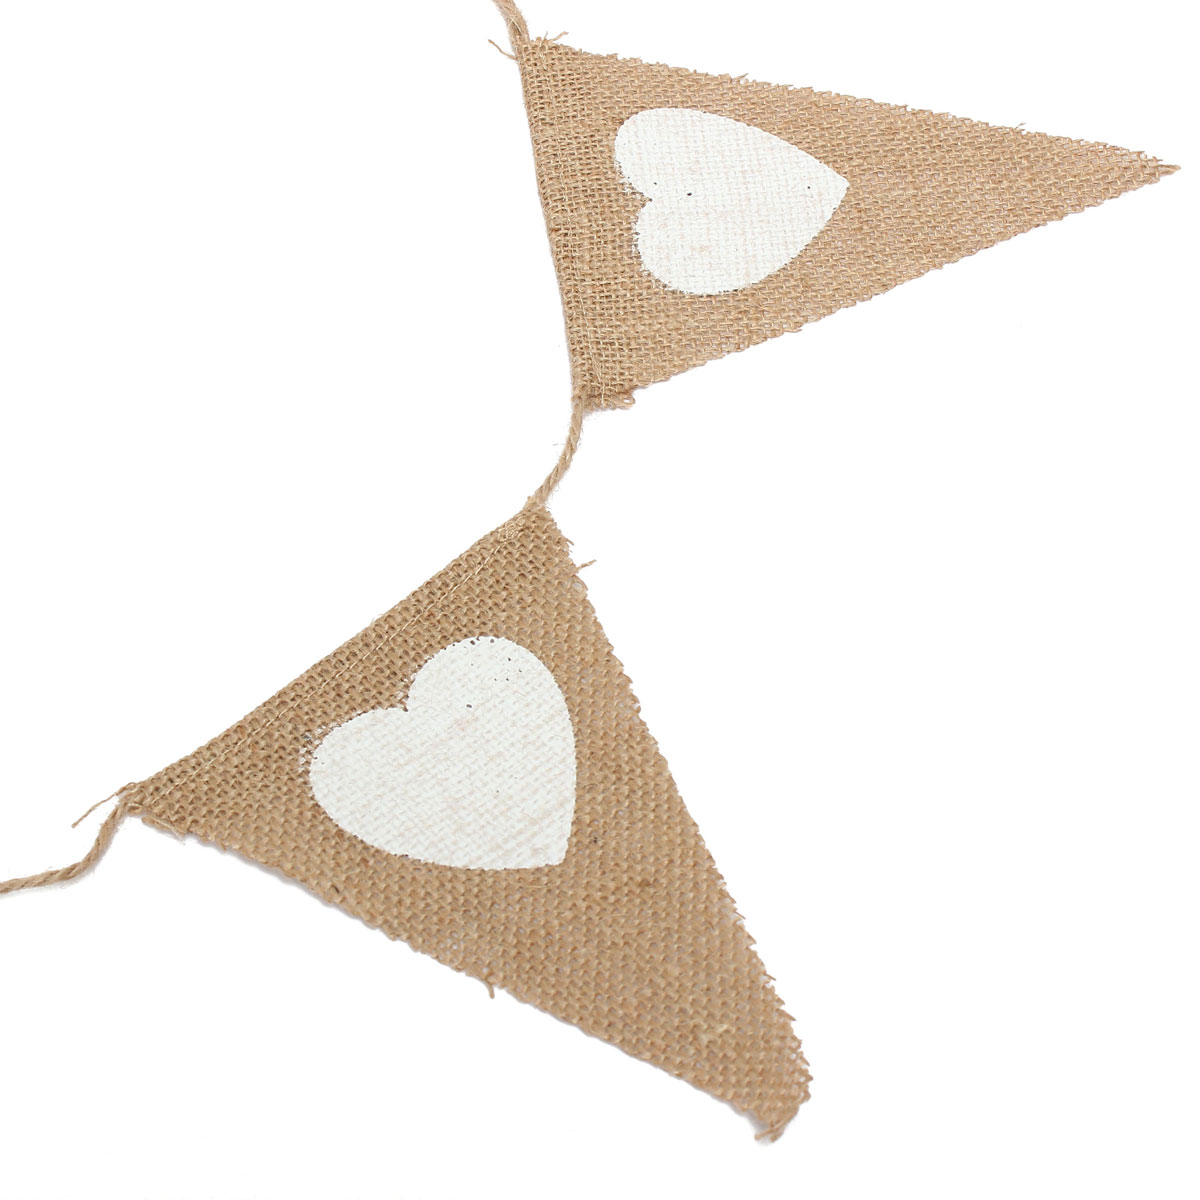 2.8M Heart Triangle Pattern Hessian Burlap Fabric Rustic Wedding Banner Bunting Decoration